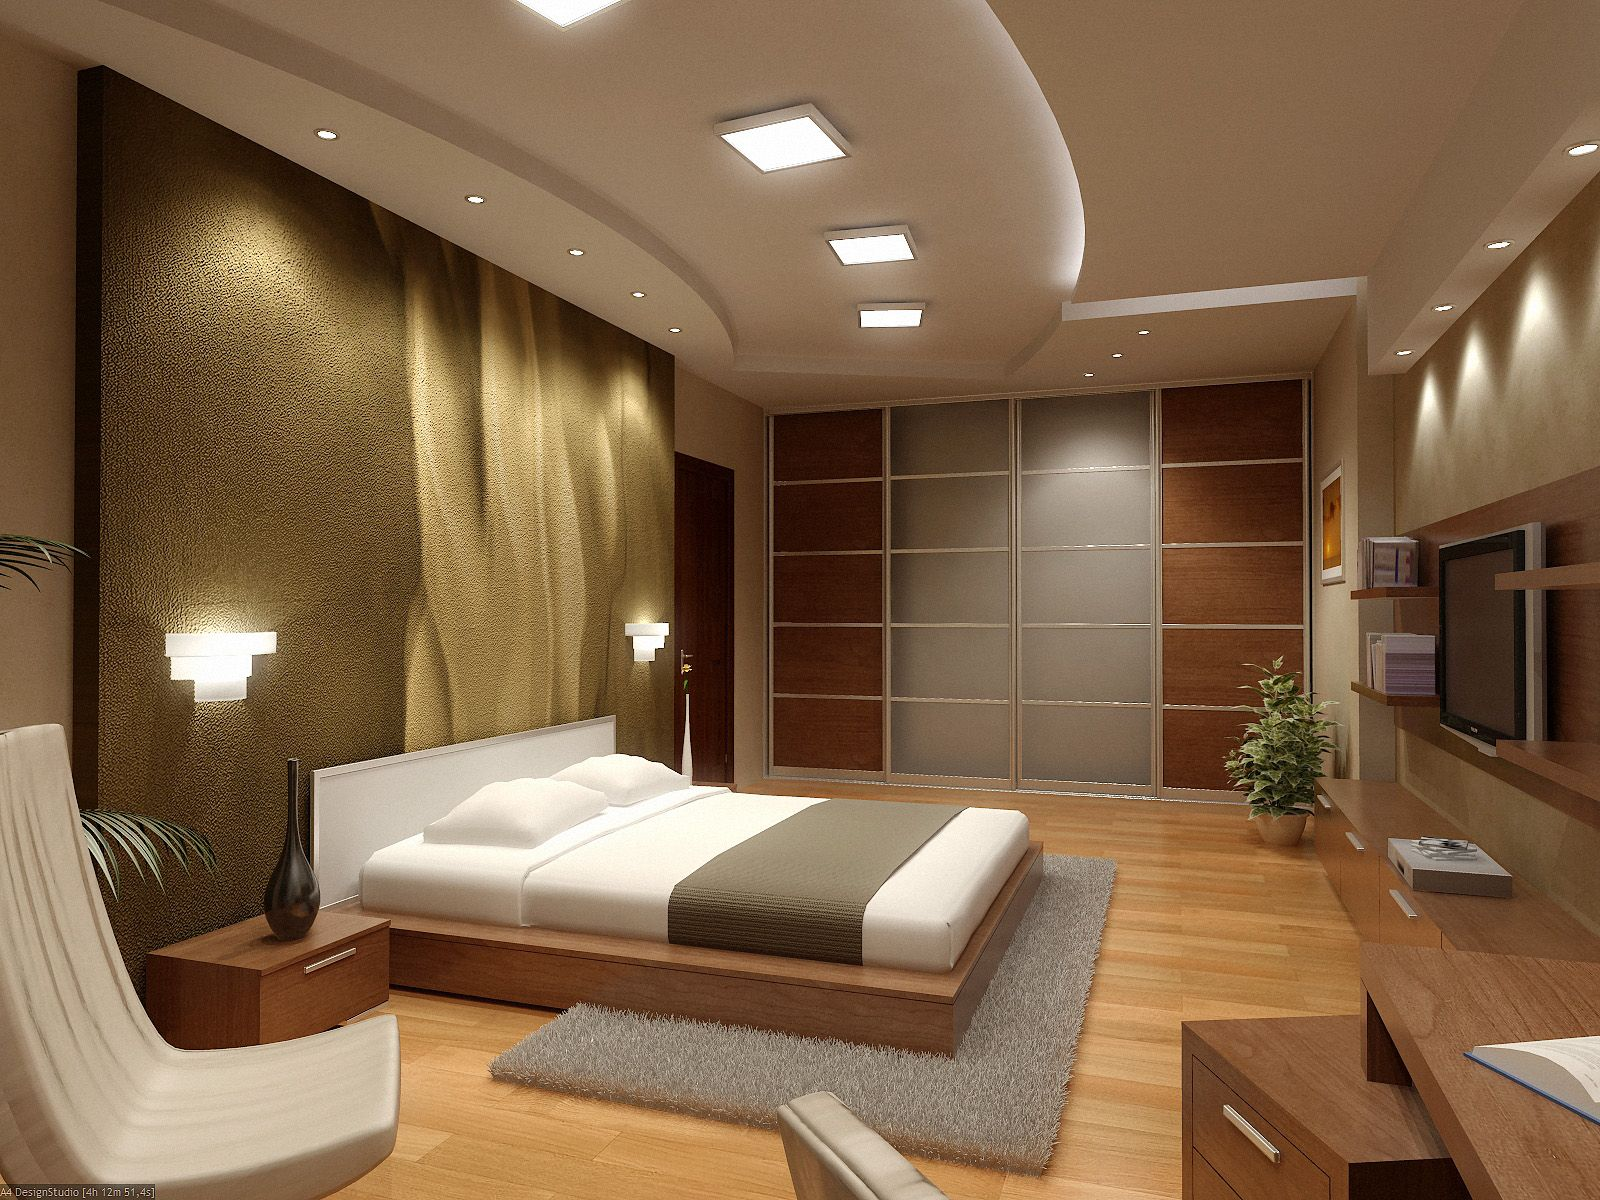 Interesting Bedroom Studio Apartment Decorating With Best Light Fixture Ideas